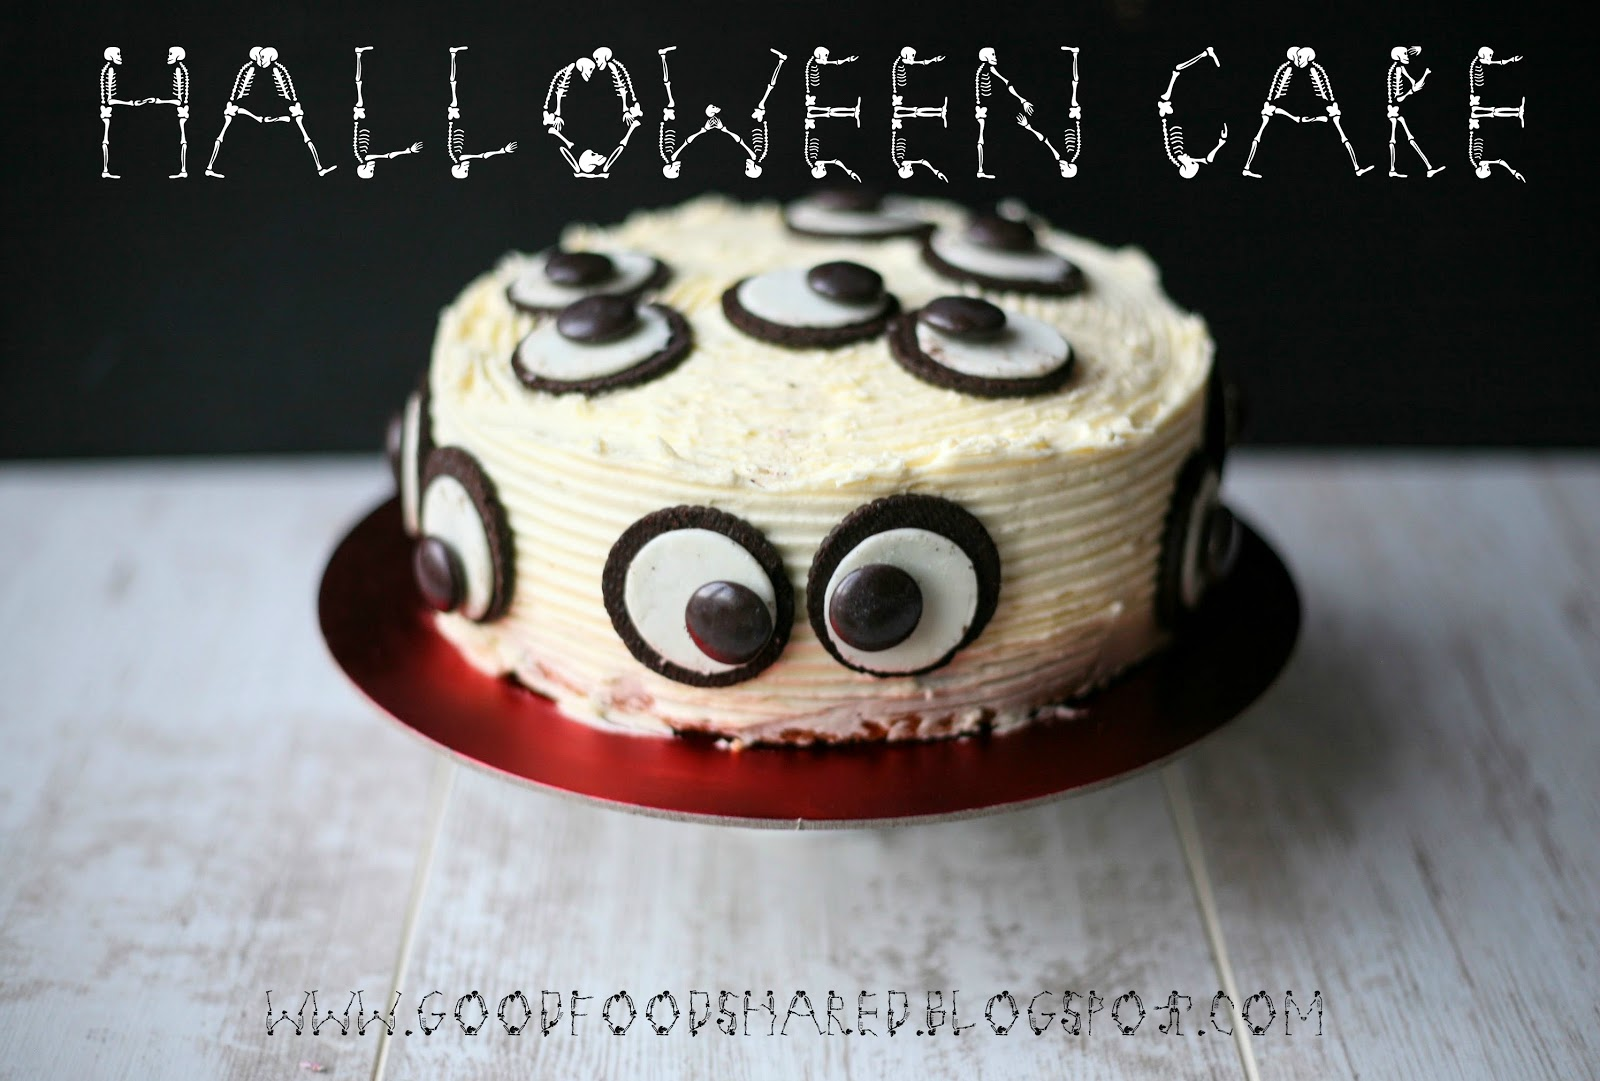 Halloween Cake, easy and tasty. Thank you The Cake Blog for your wonderful cake!  www.goodfoodshared.blogspot.com